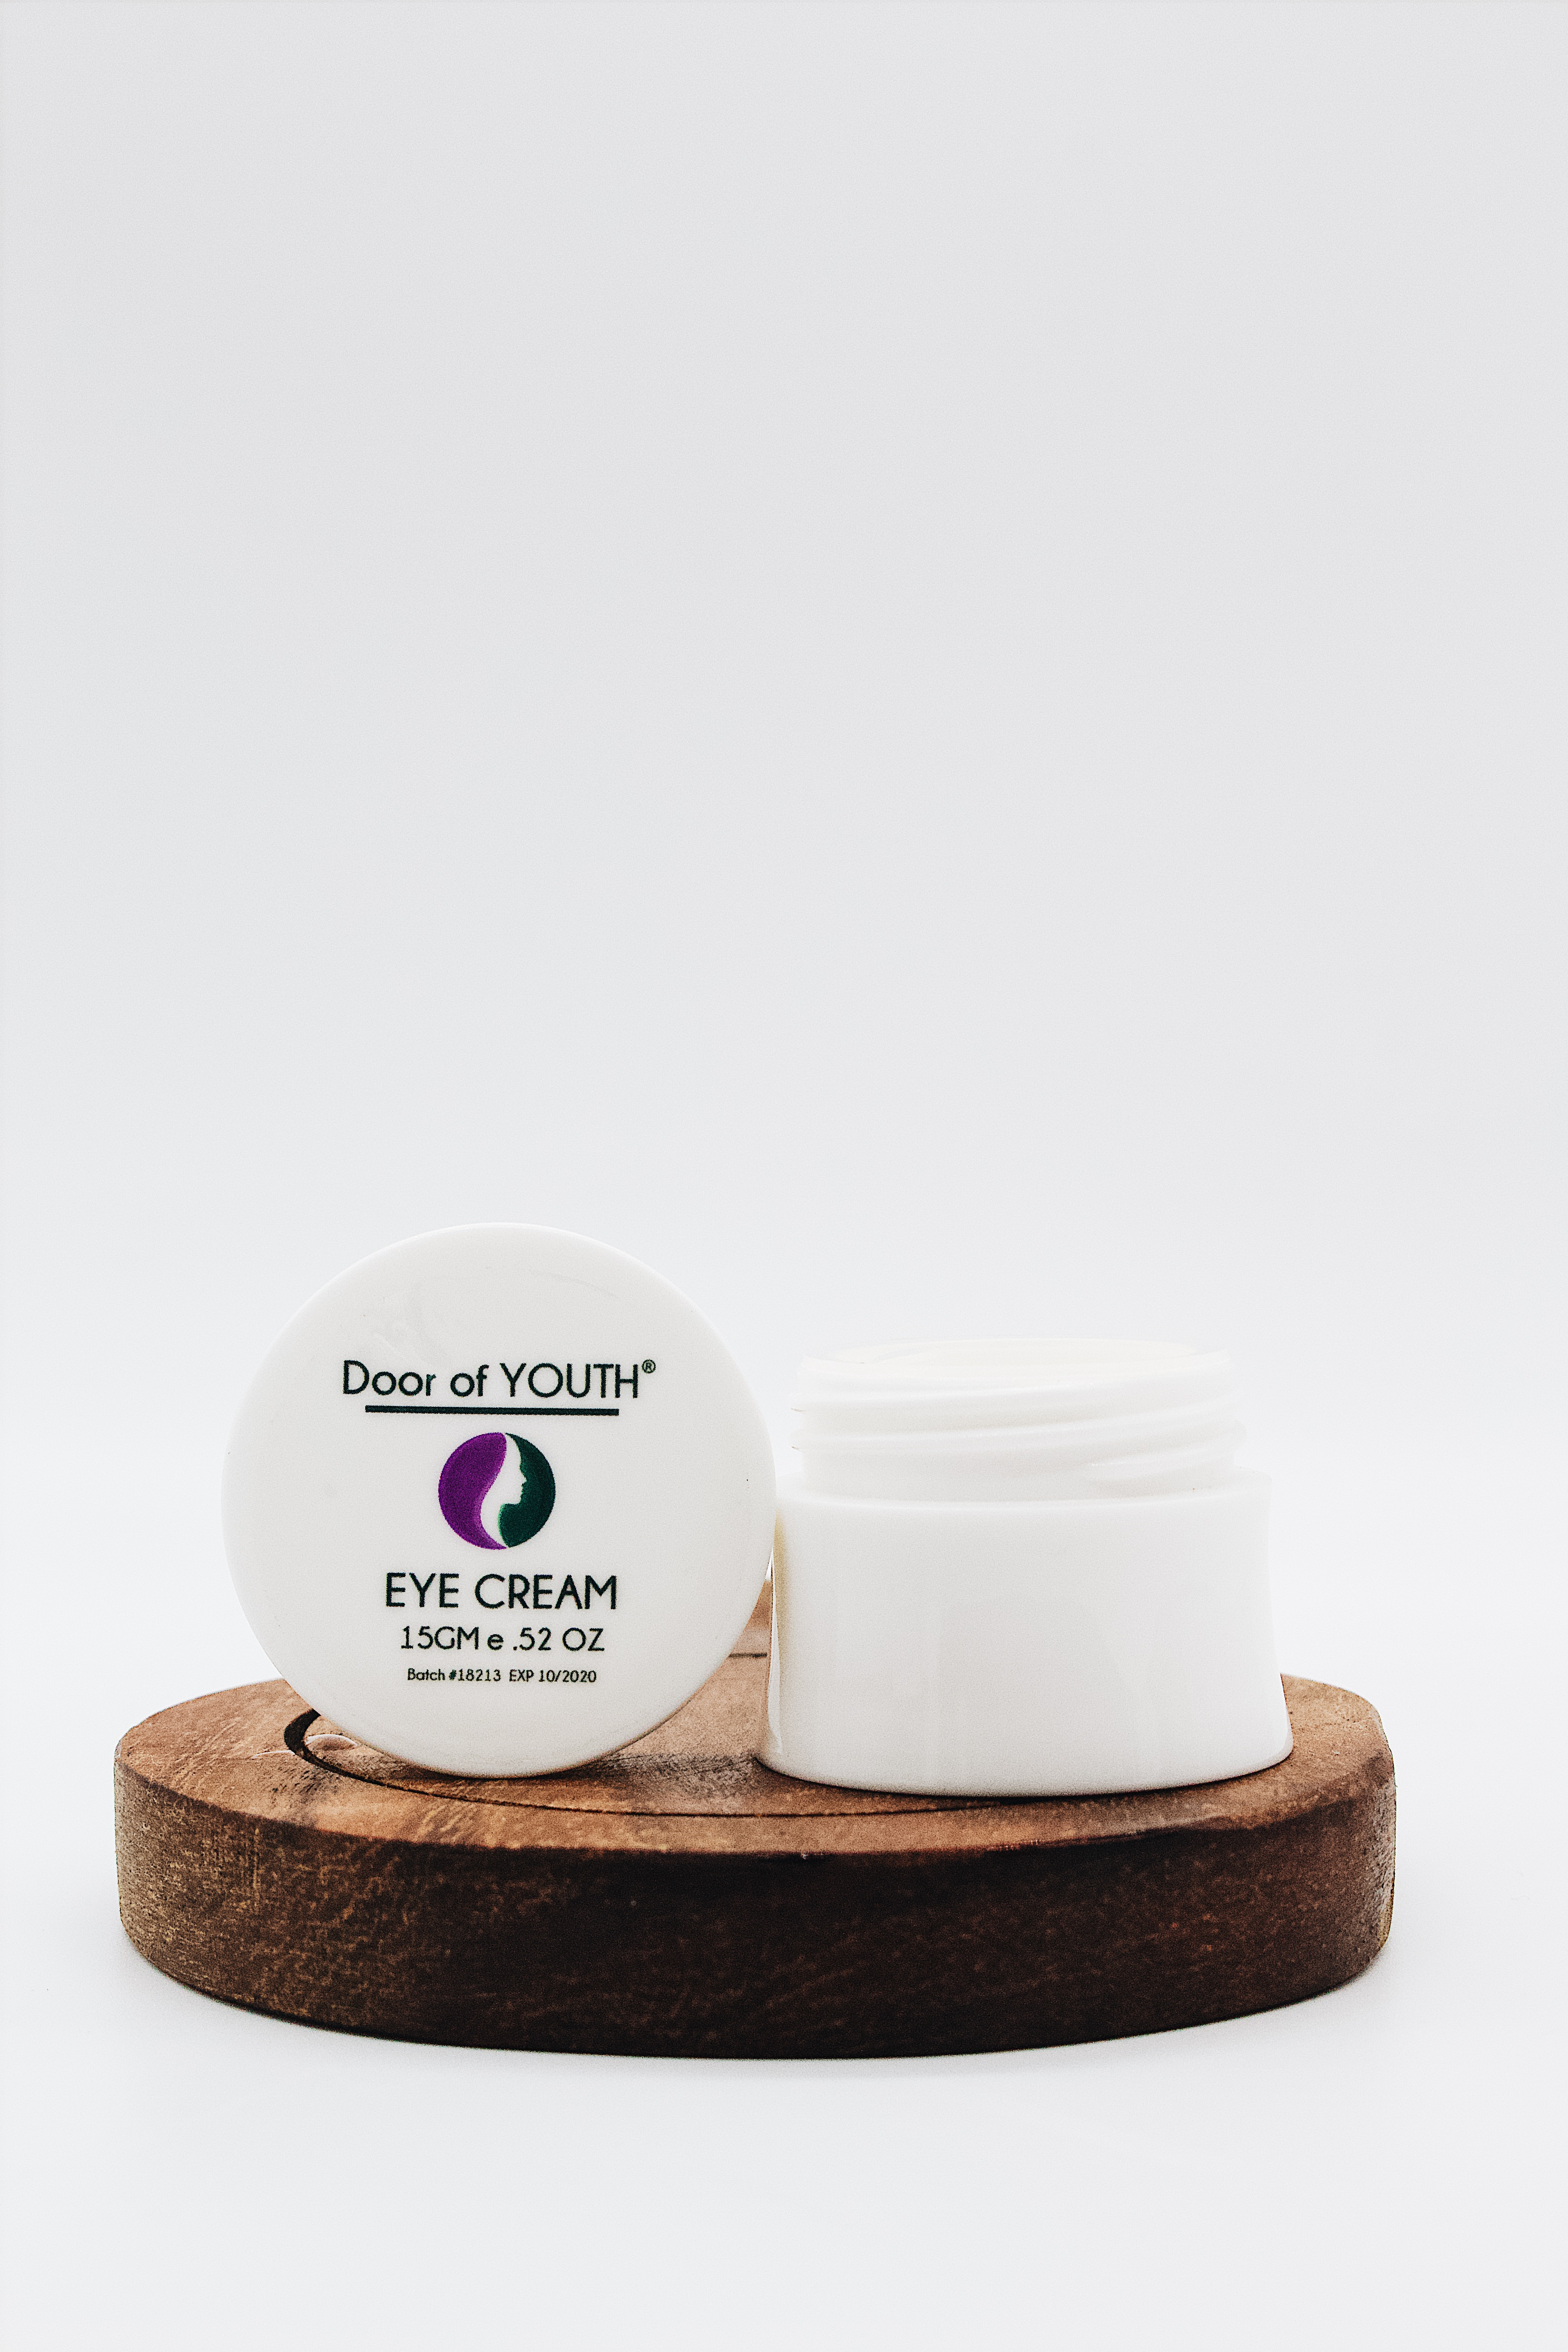 Eye Cream | Pro-age Skin Care Collections | Door of Youth